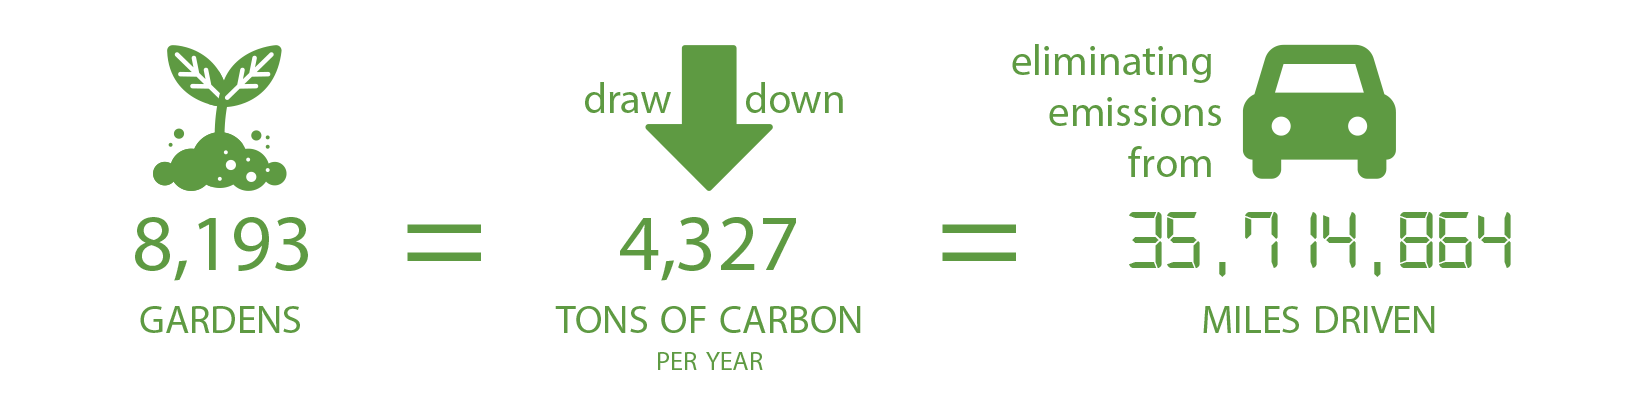 graphic showing number of gardens, amount of carbon sequestered